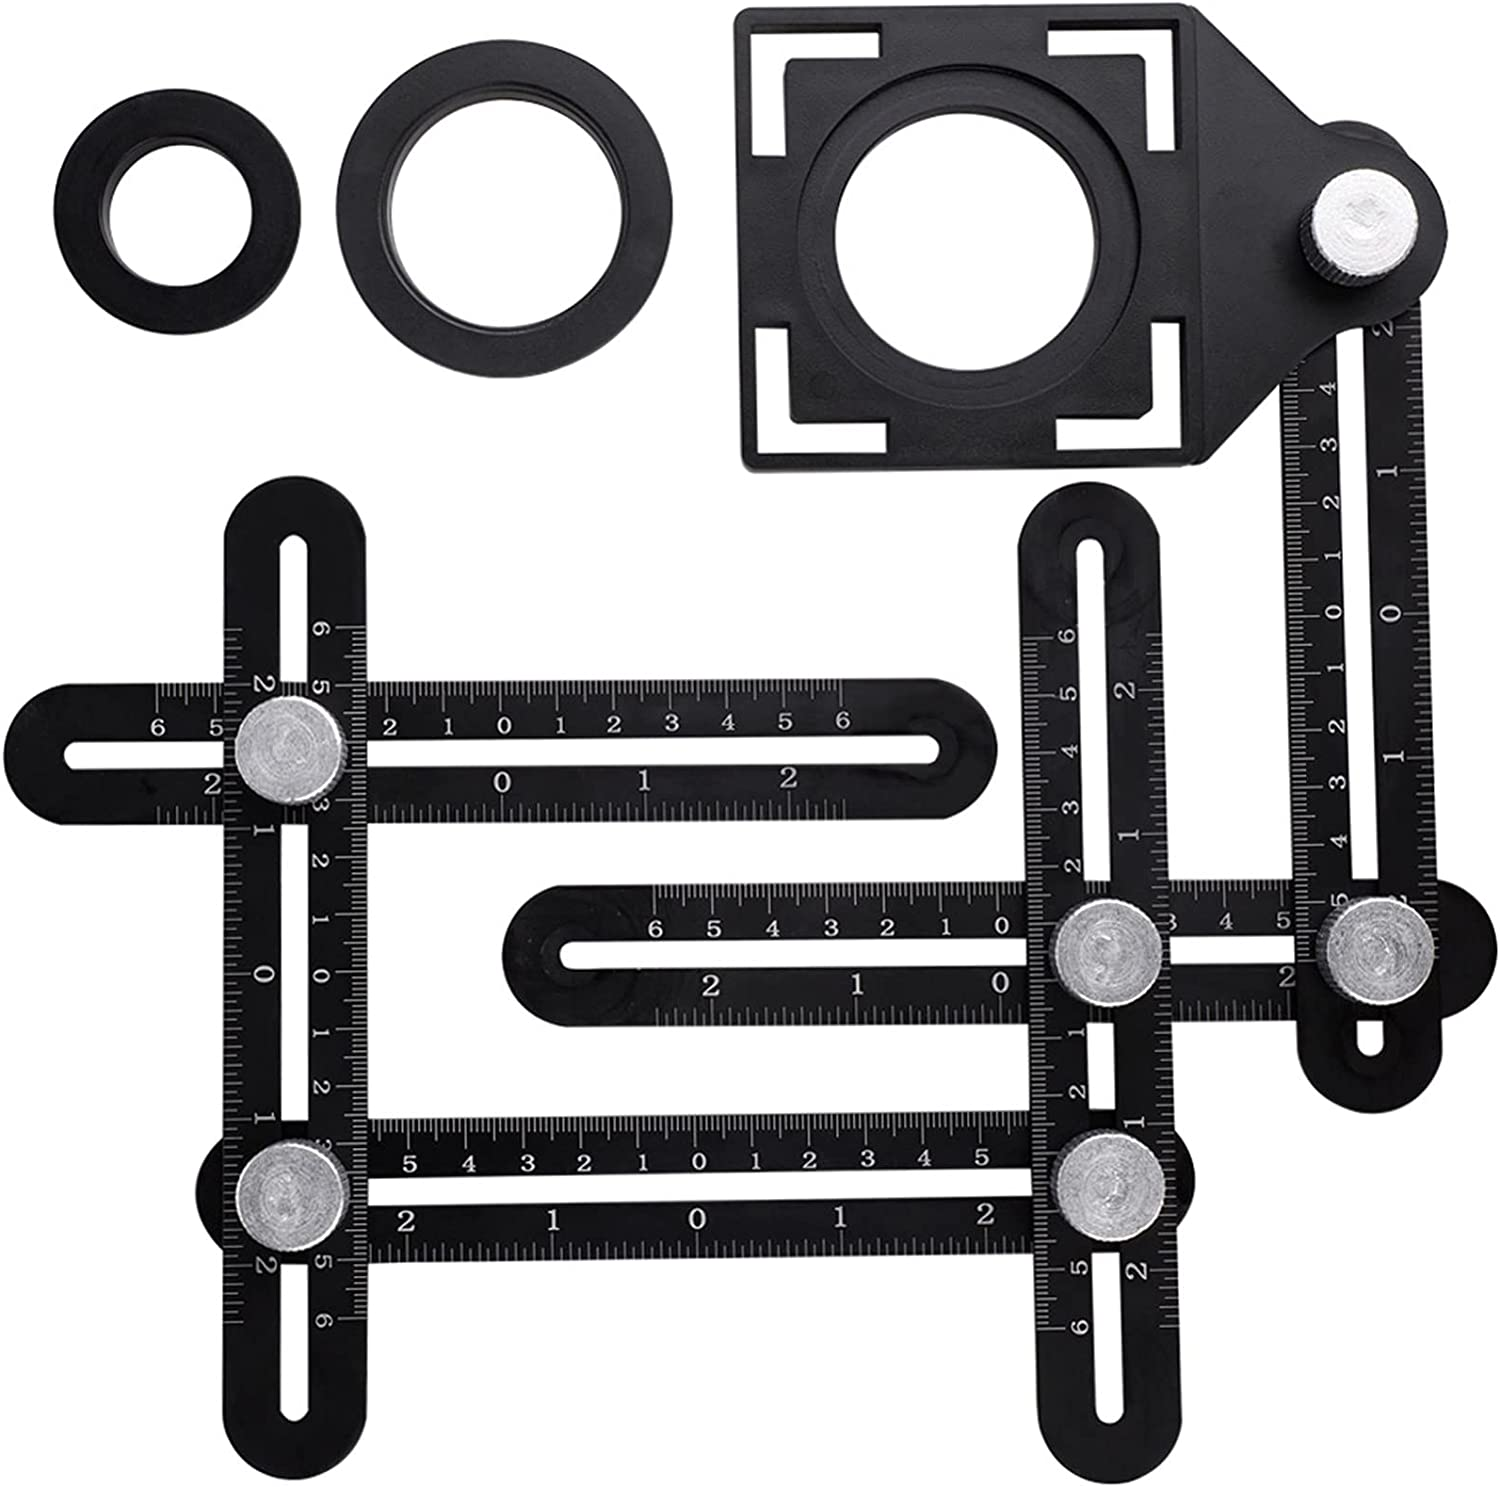 Template Sale Special Price Tool Multi Angle Measuring National products Universal 6 Ruler Section Al